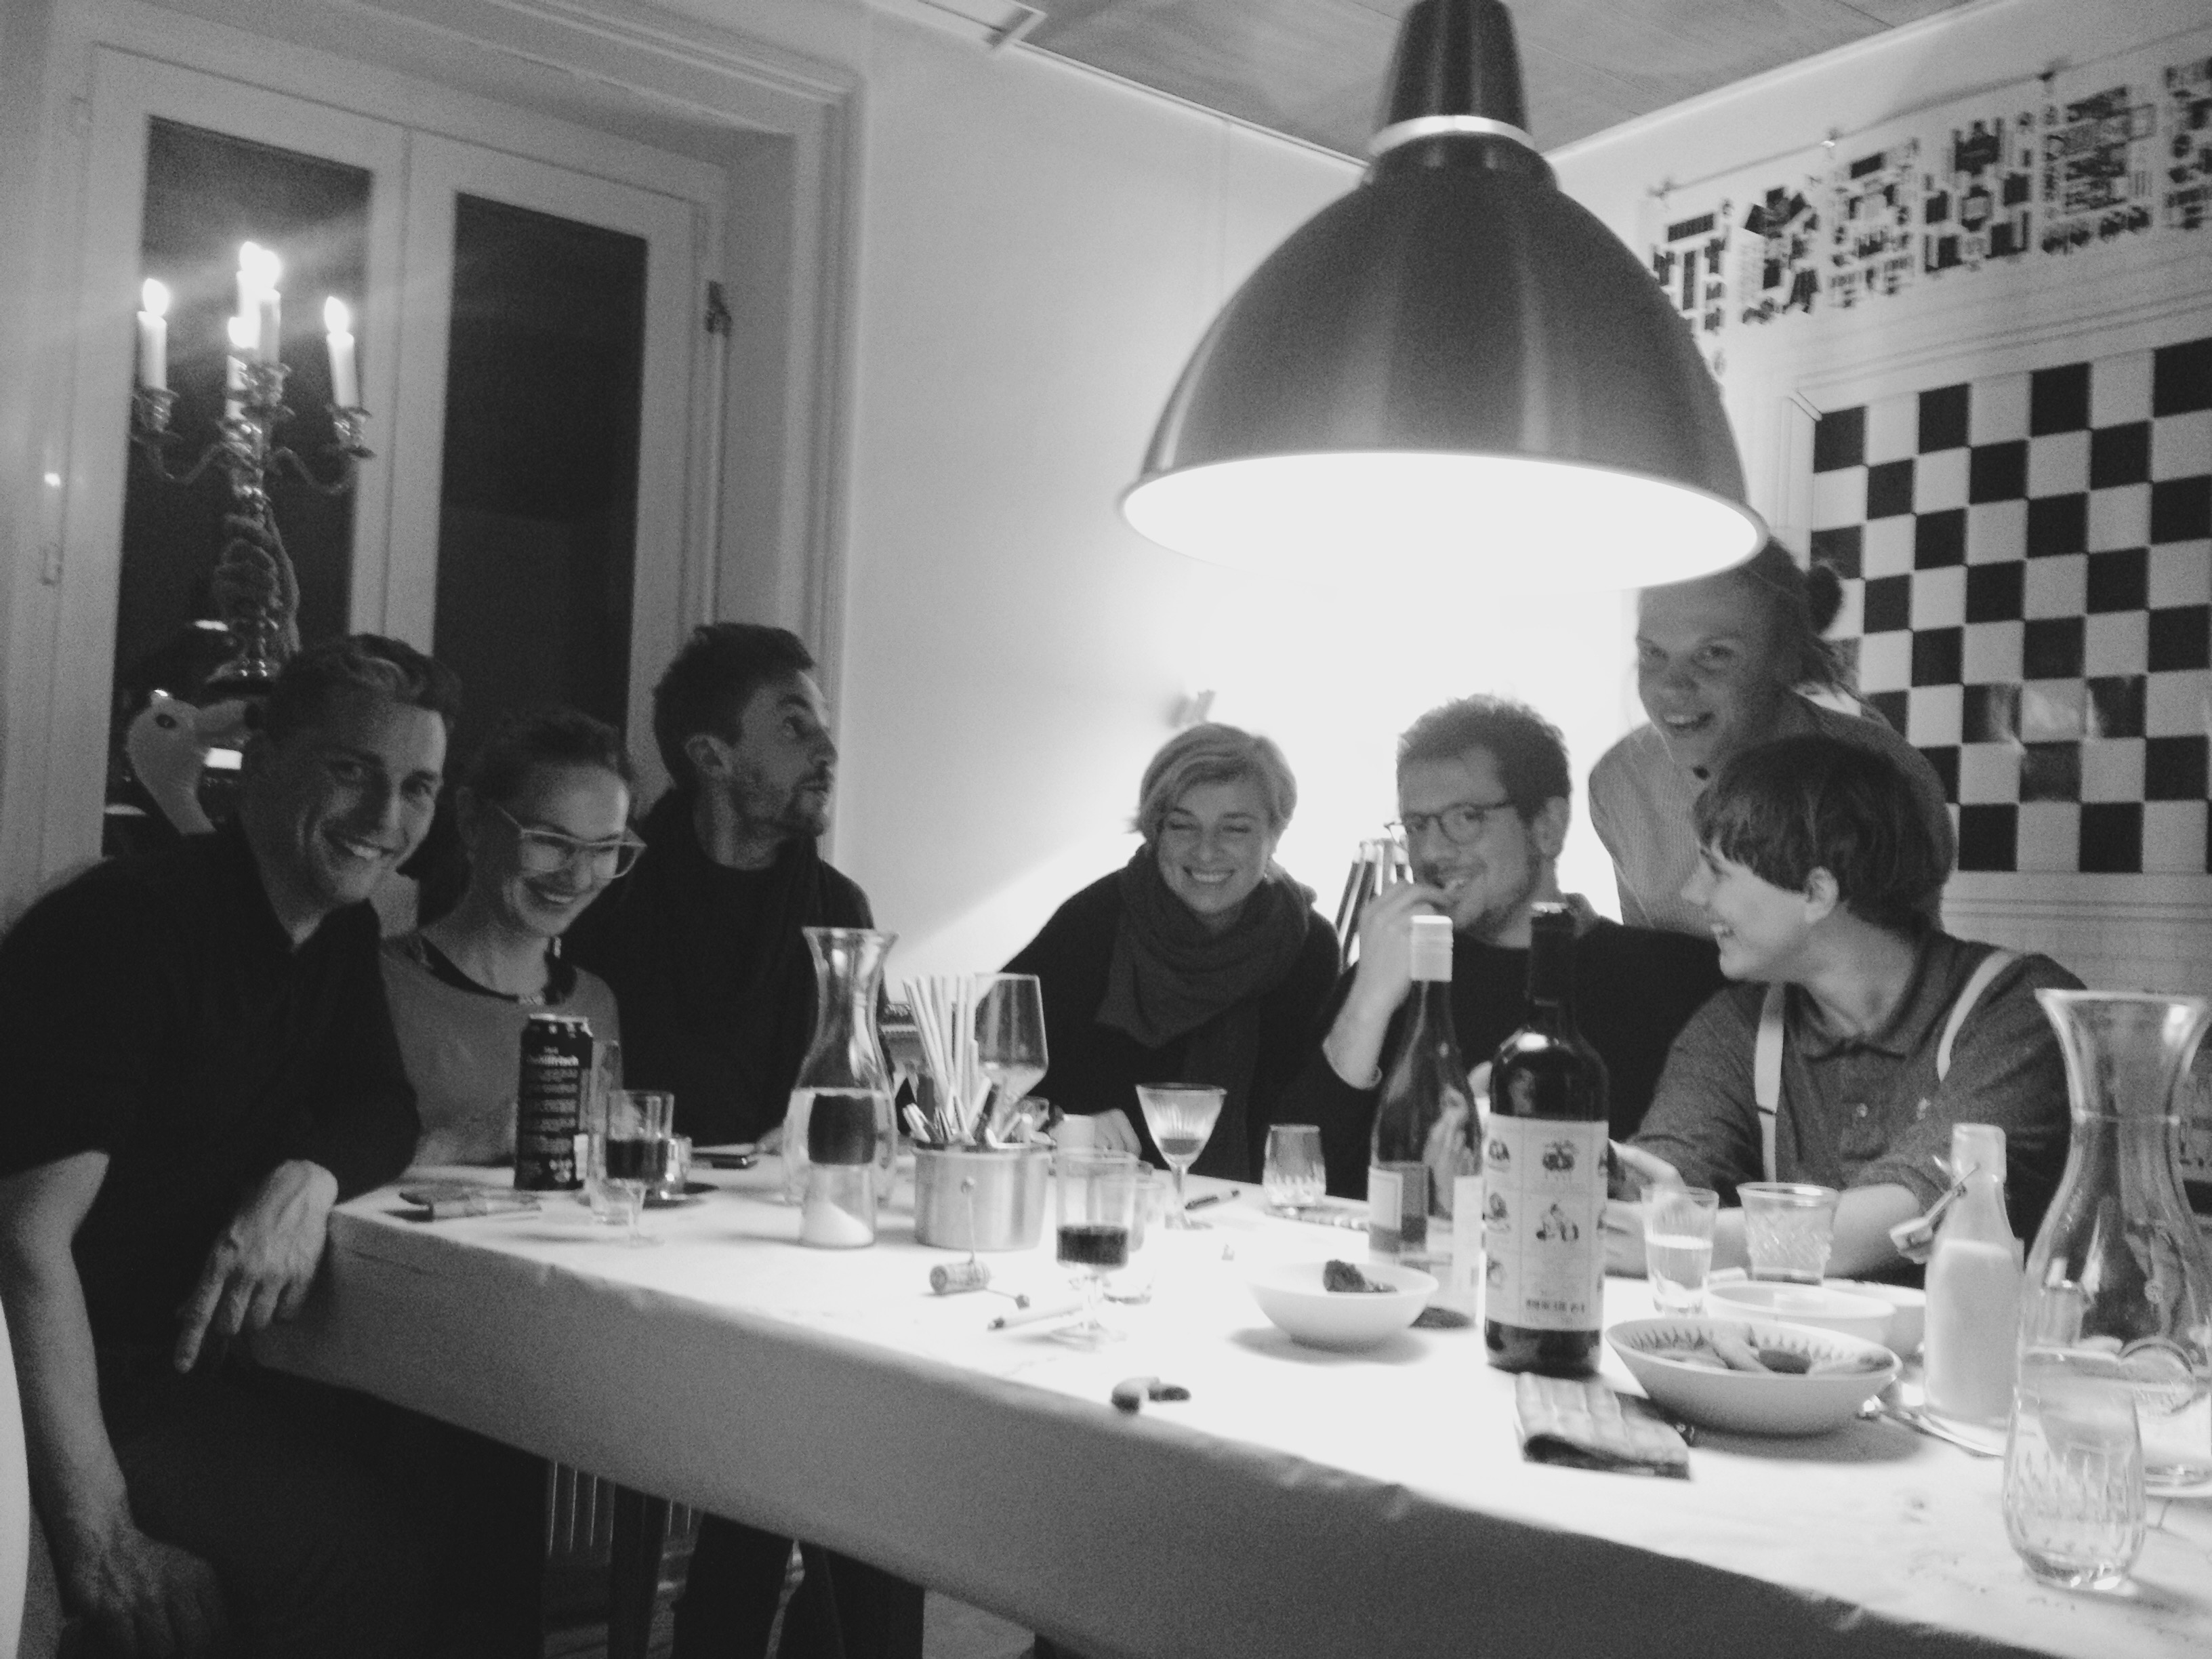 From left to right: Pablo Müller (art critic), Bettina Diel (artist), Jan Hostettler (artist, founder TomBola), Bettina Carl (artist, curator), Sébastien Peter (curator, founder Sonnenstube), Margit Säde (curator), Mirjam Bayerdörfer (founder Neuer Kunstverein Saarbrücken, assistant Curating ZhdK), invited by Patricia Bianchi (curator).